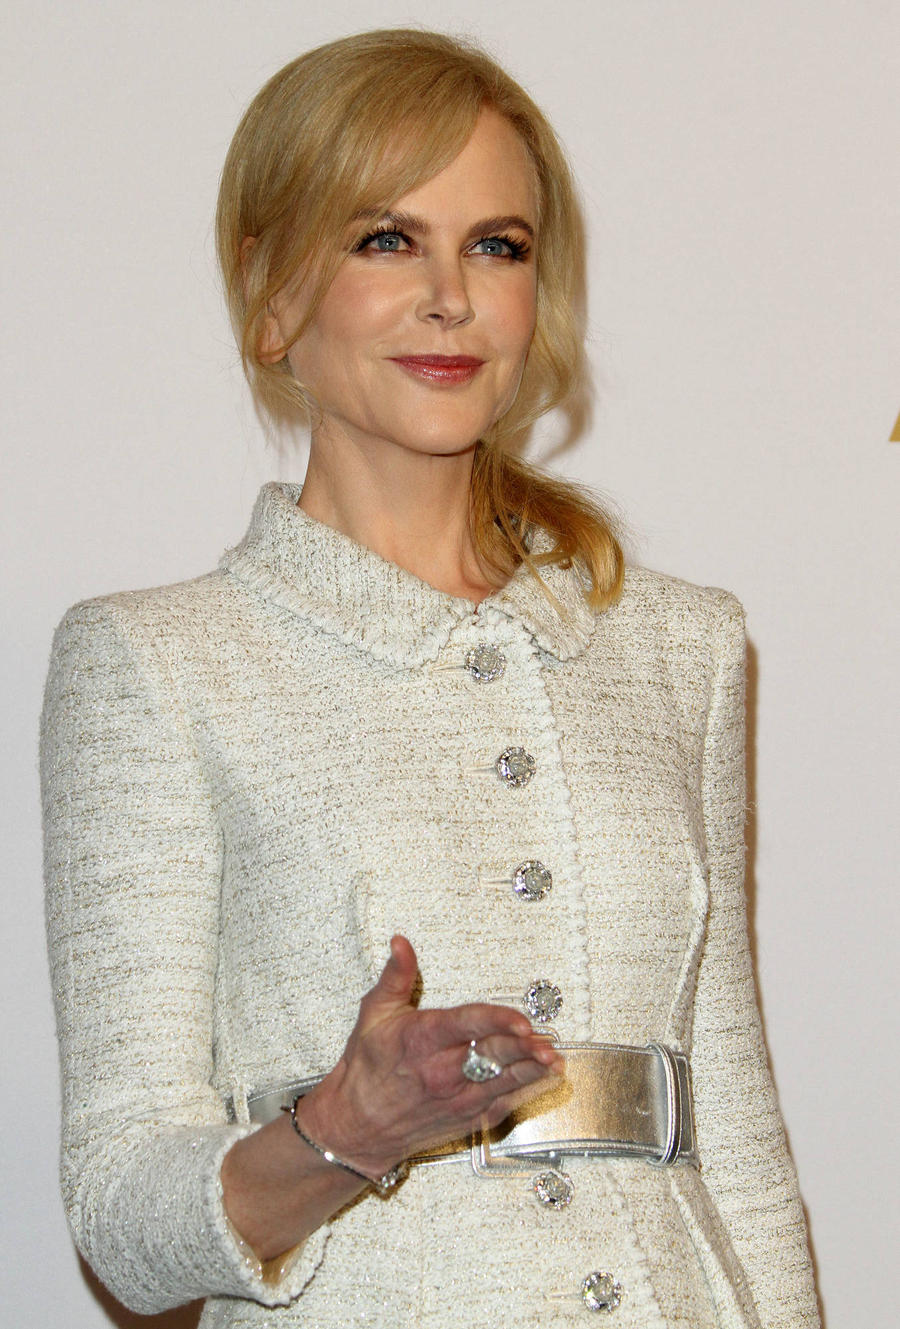 Nicole Kidman Refuses To Let Daughter Attend The Grammys With Dad